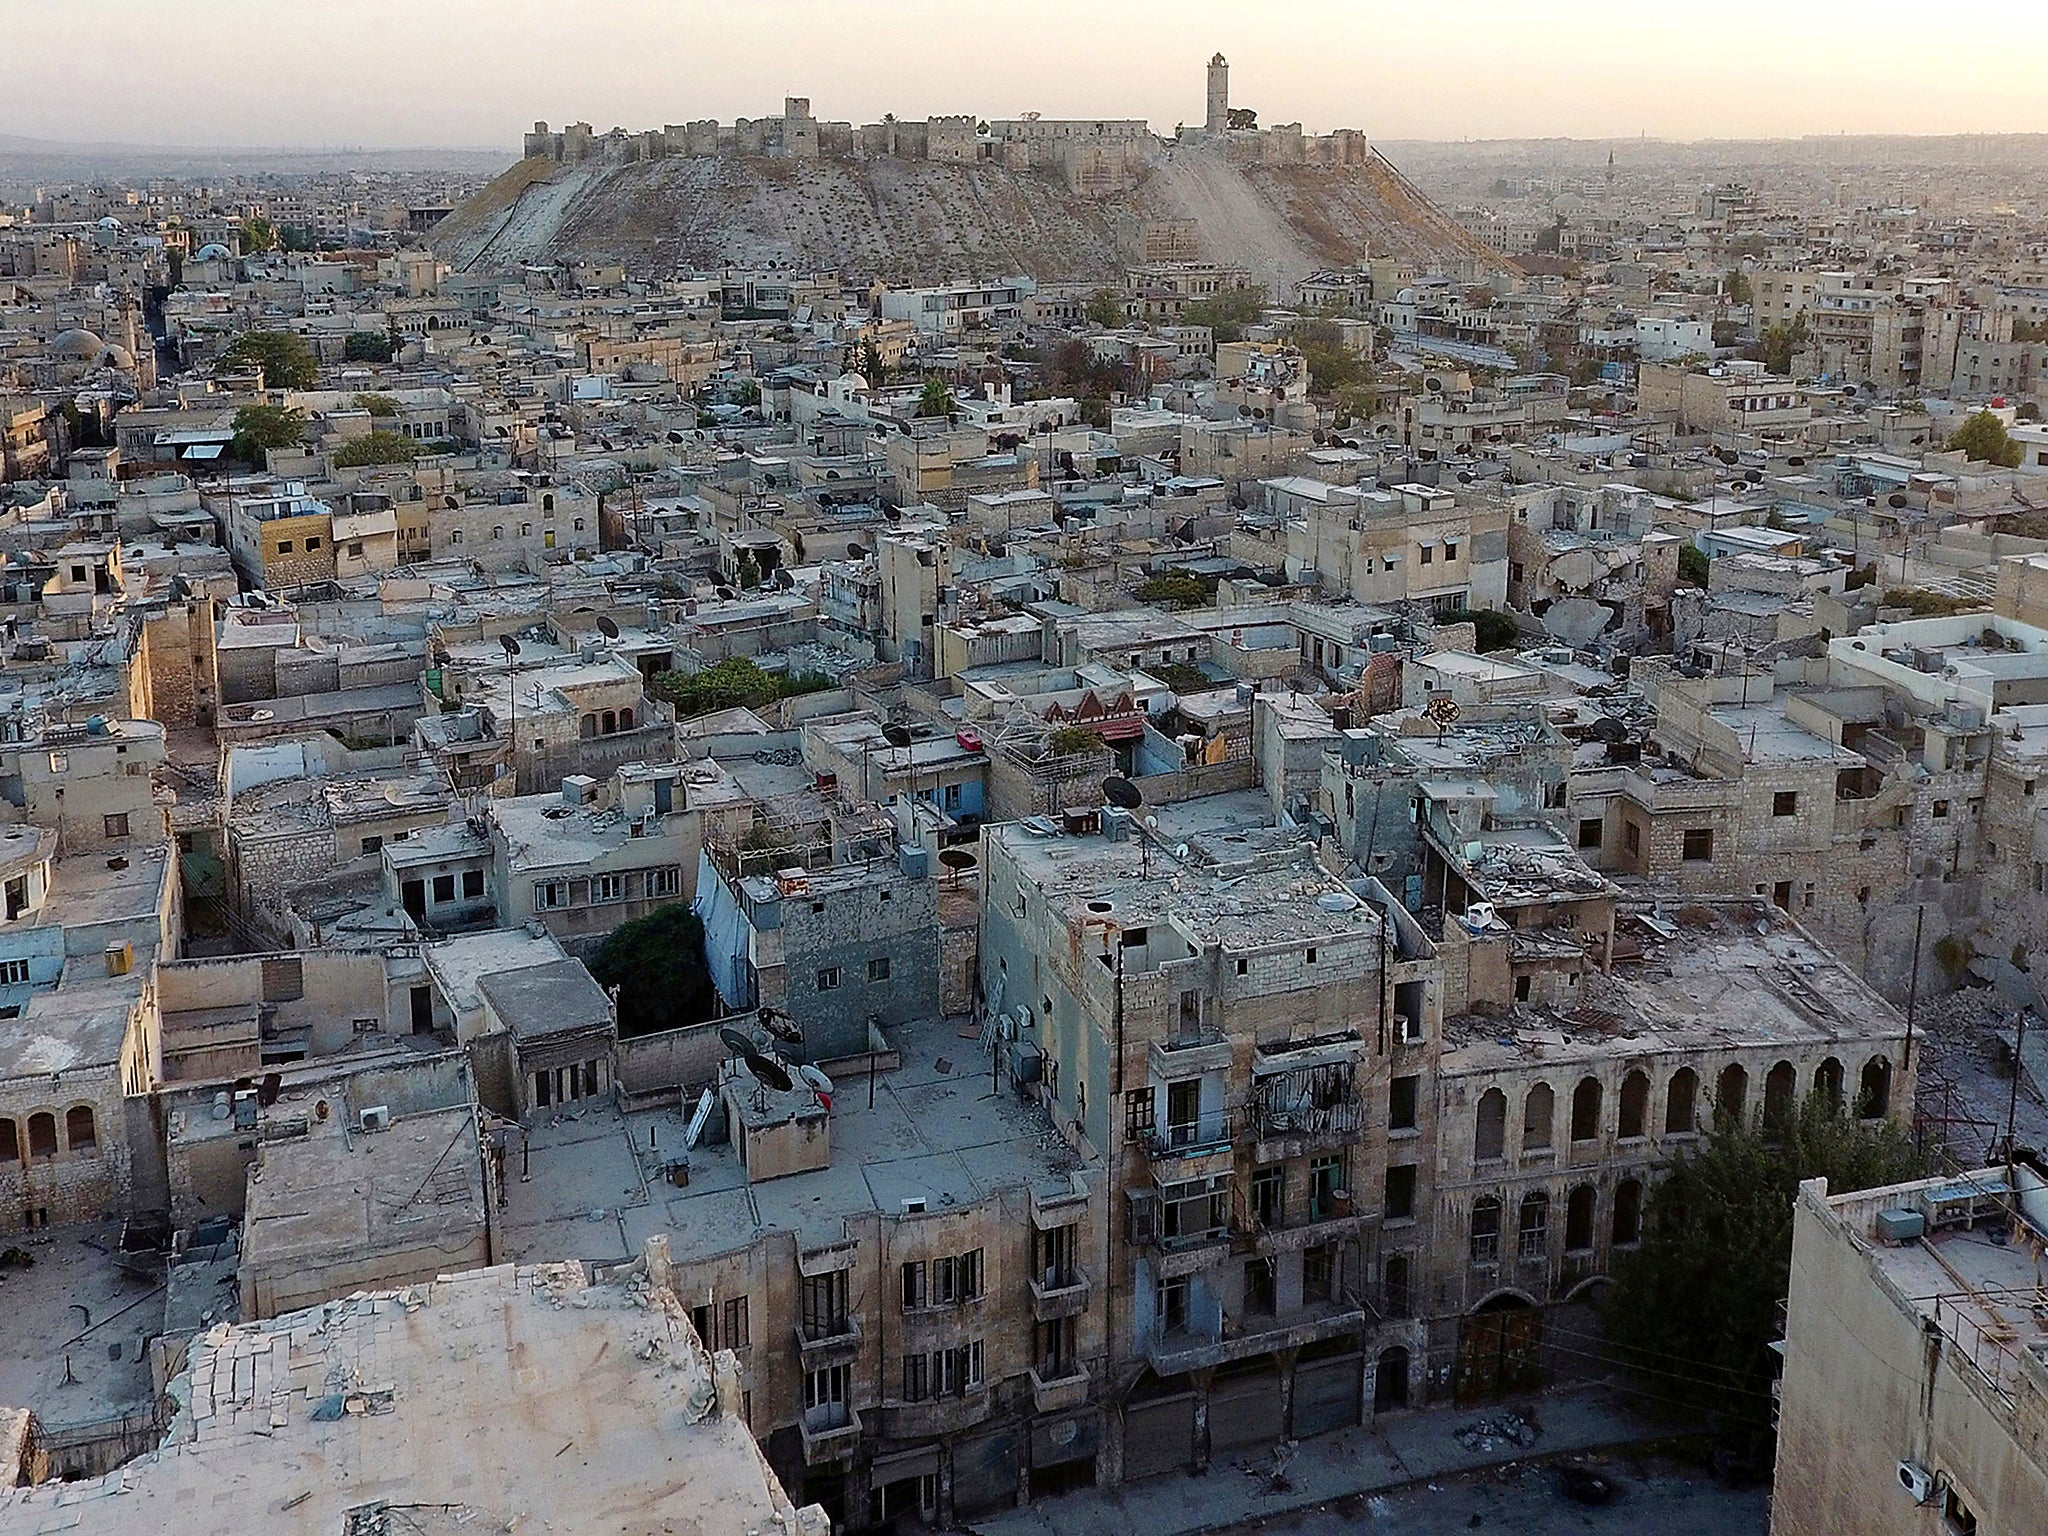 aleppo dating The citadel of aleppo is a large medieval fortified palace built on the site of an ancient temple dating back to the third millennium bc credit: patrick kovarik/afp/getty images aleppo's historic citadel, after.